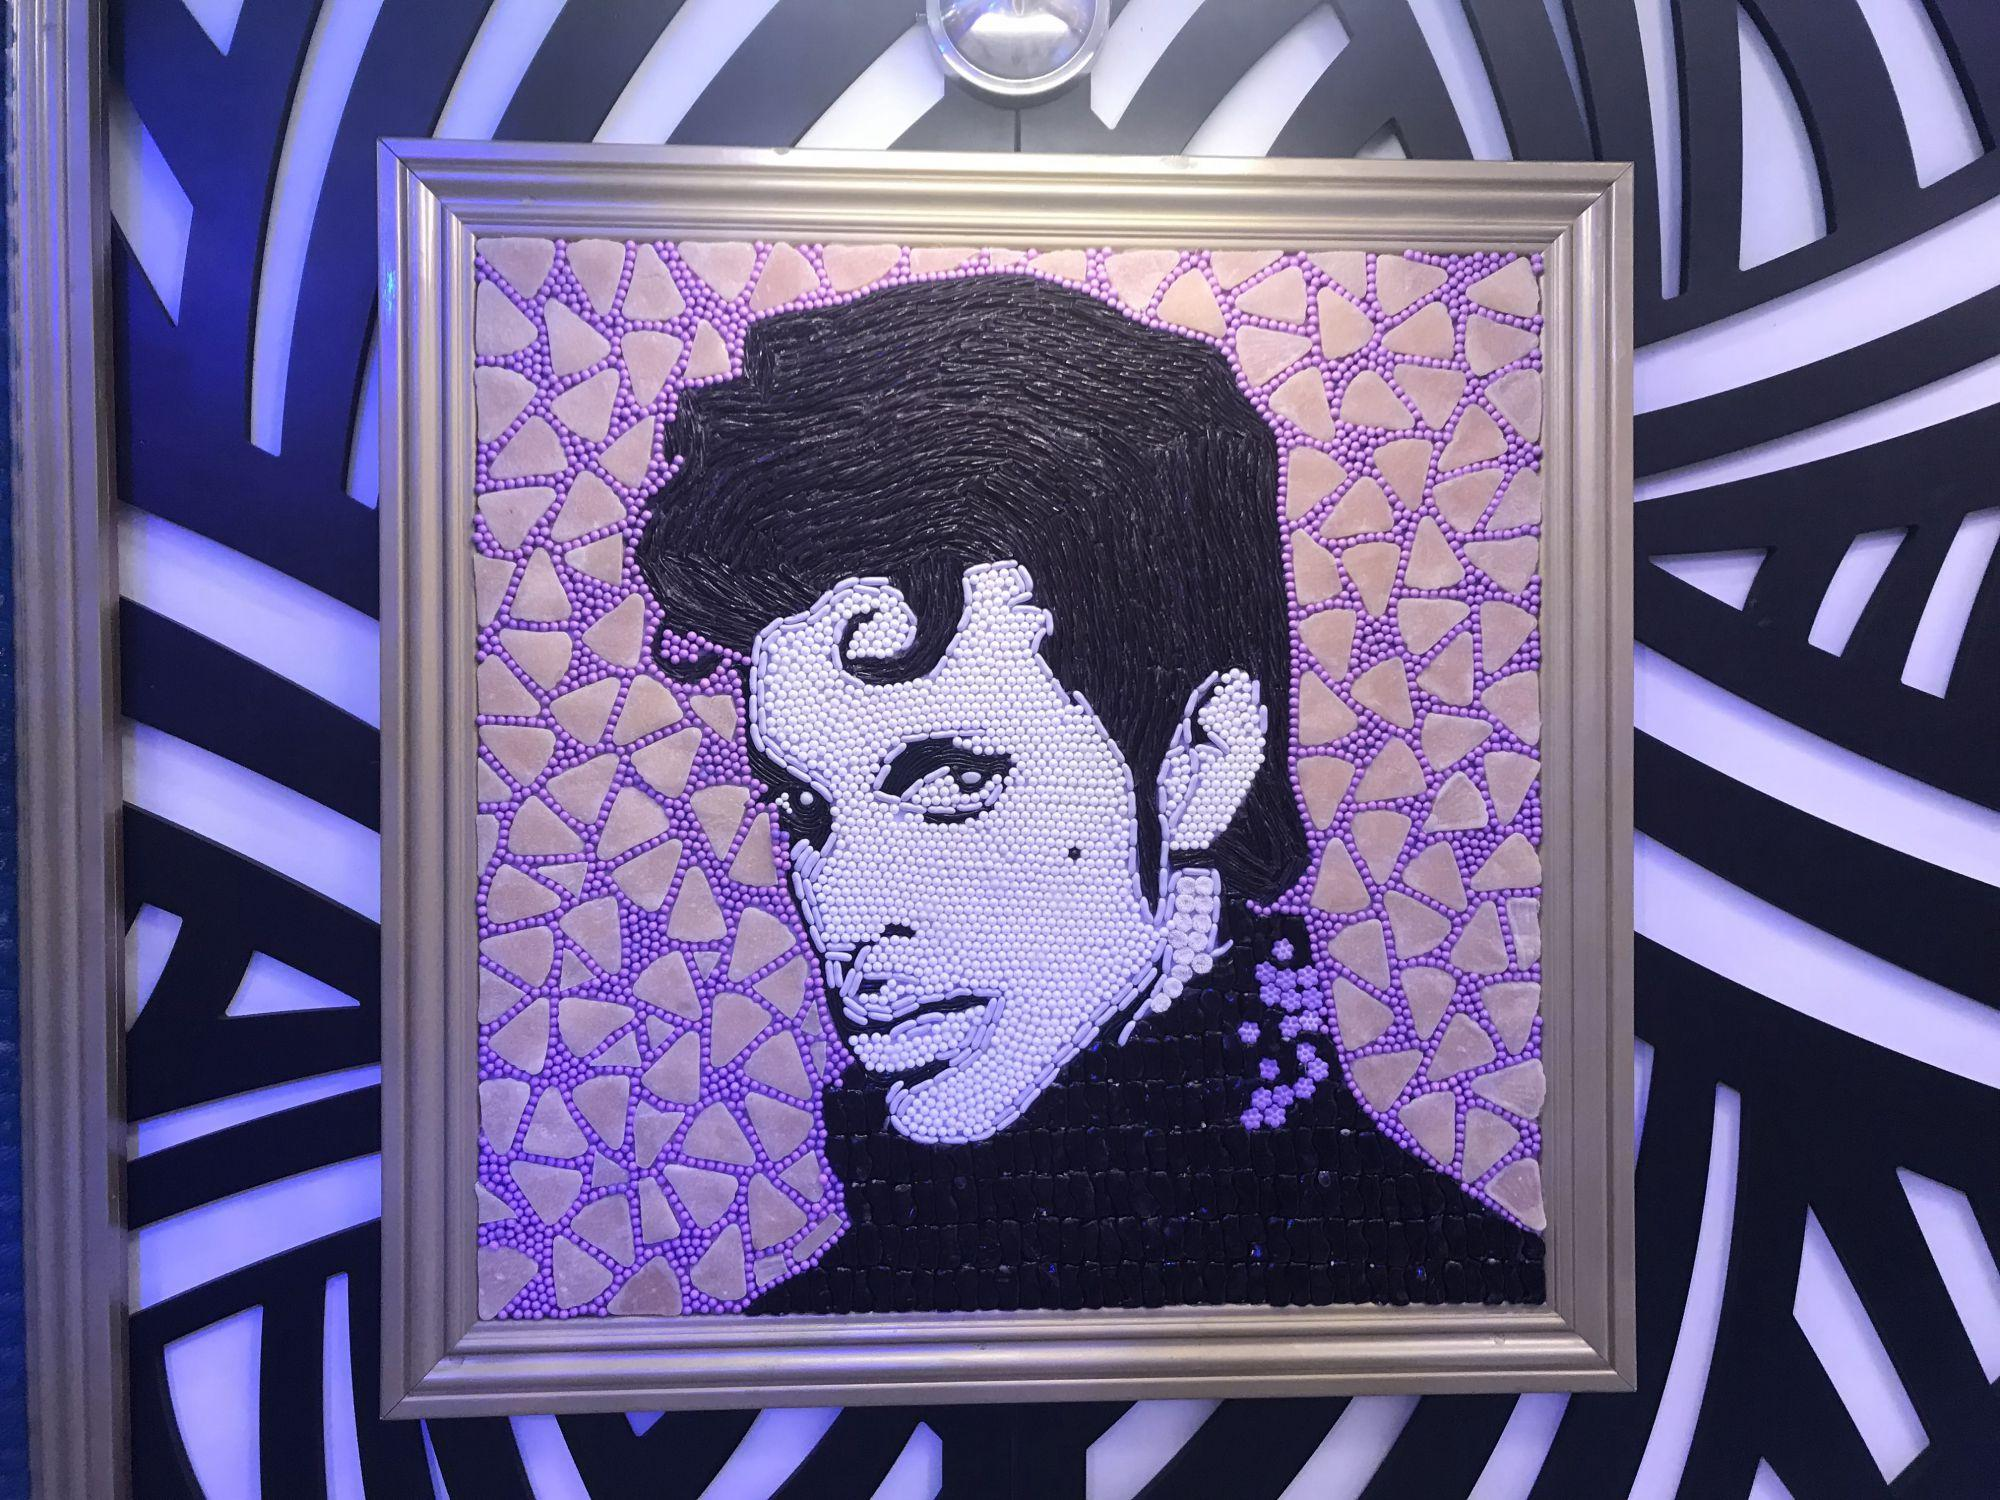 +Characterized+by+his+trademark+color+purple%2C+the+artist+recreated+Prince+with+black+licorice+and+candy+pearls.+